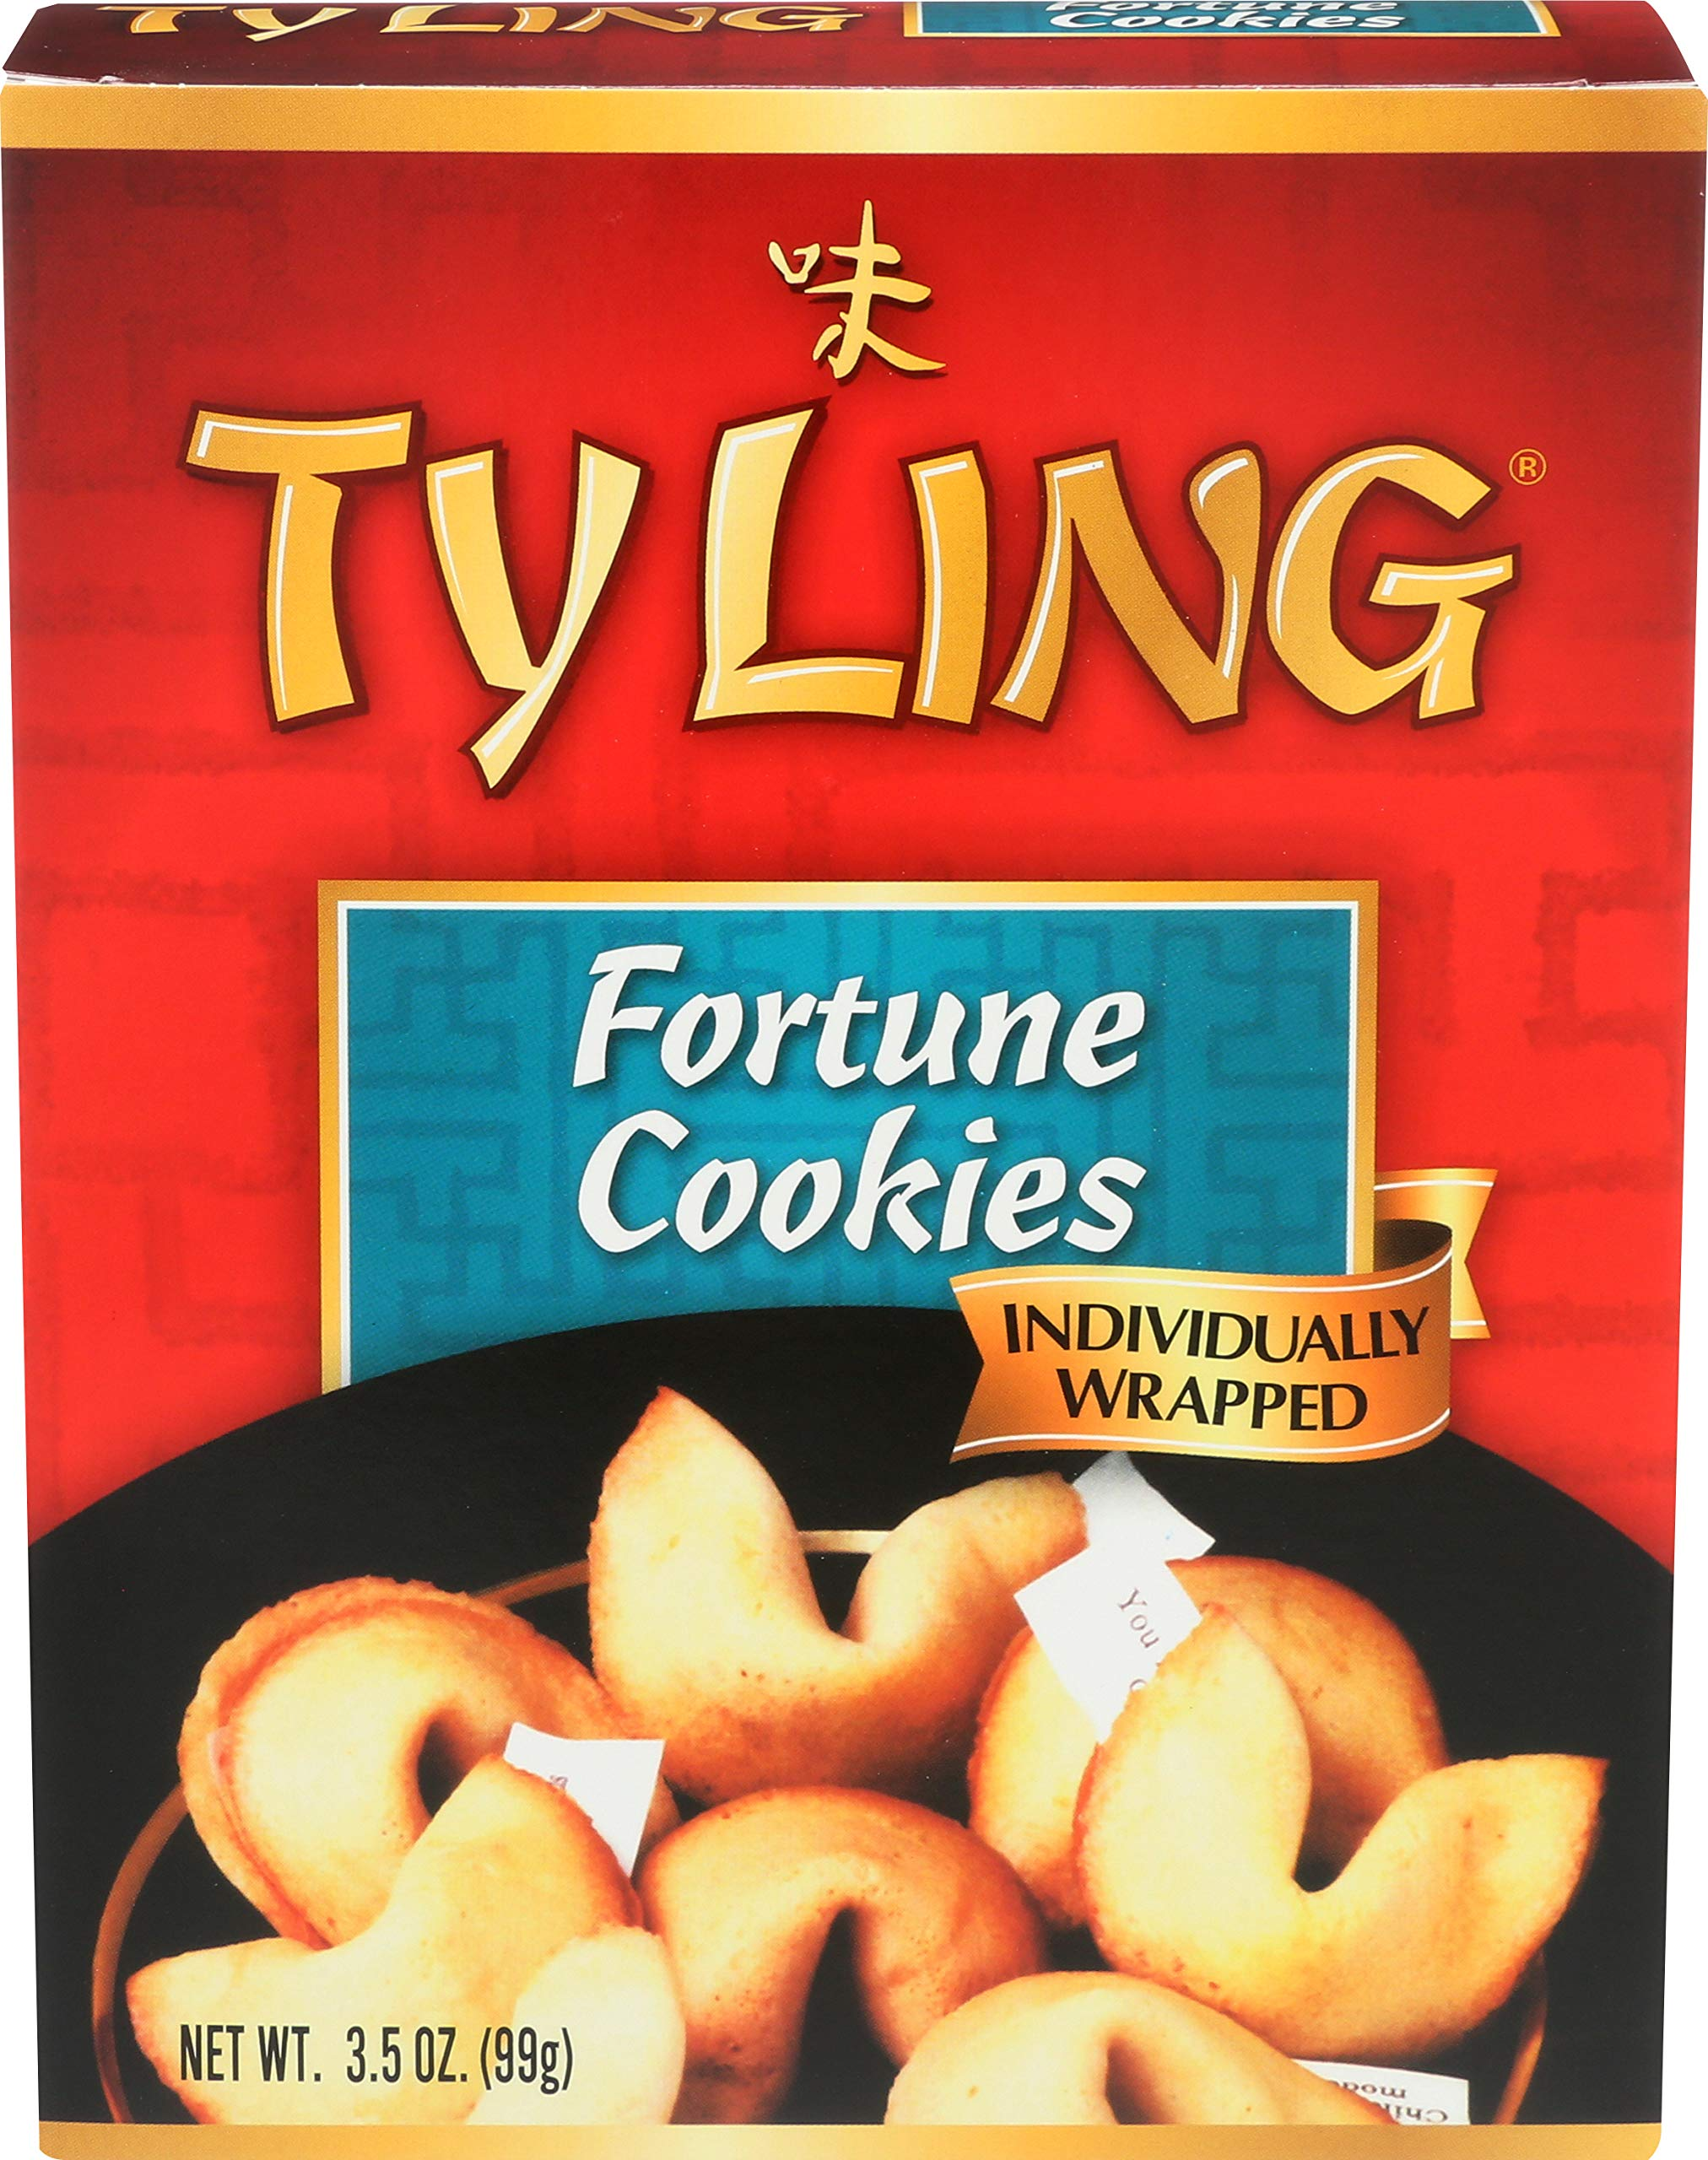 Ty Ling Fortune Cookies, 3.5-Ounce Box (Pack of 12) by Ty Ling